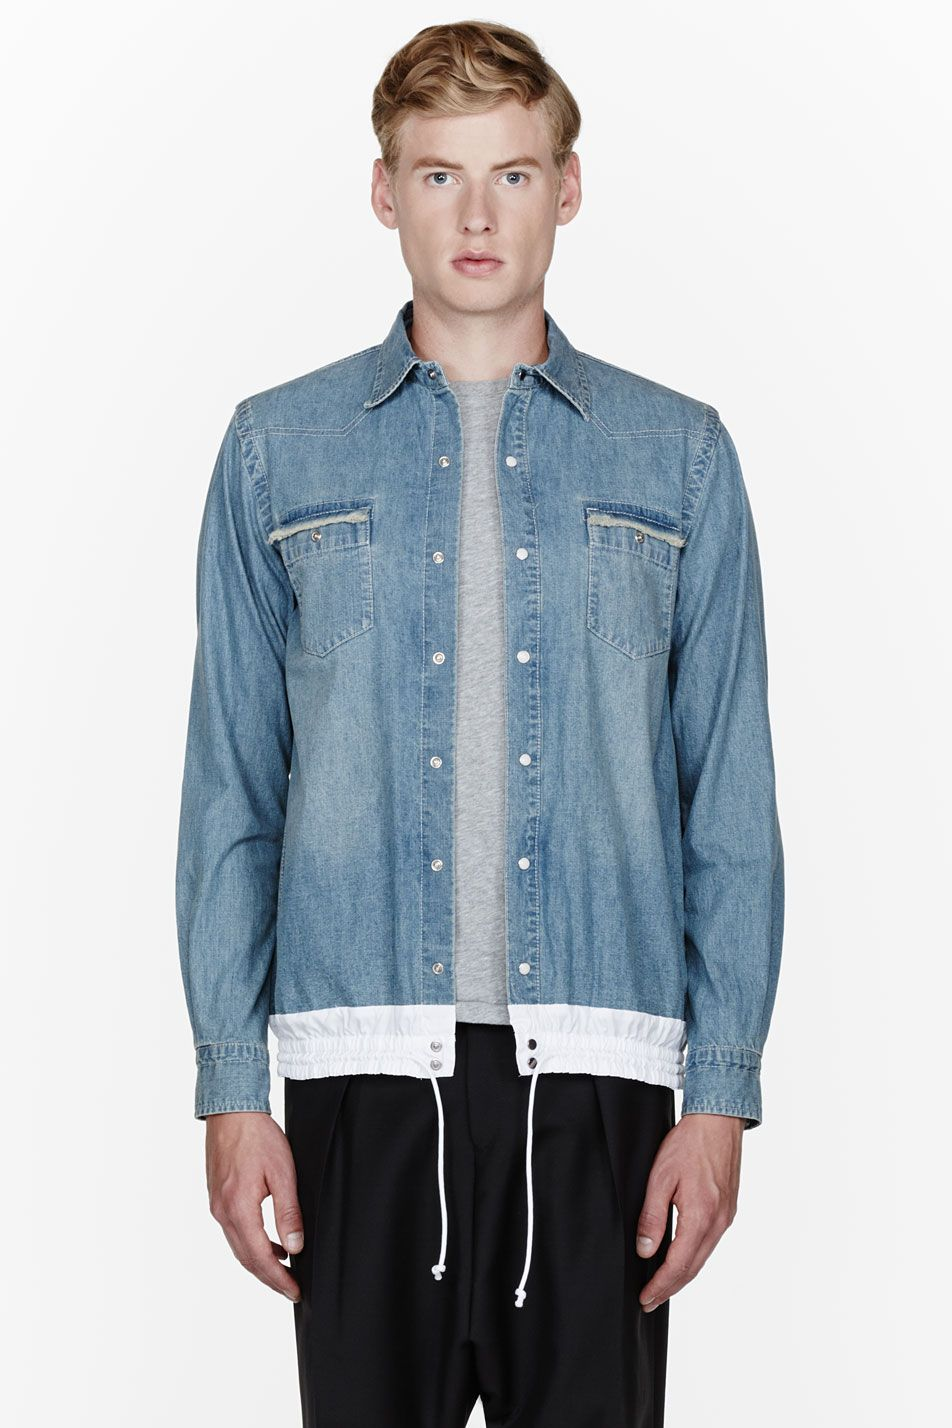 SACAI //  Blue drawstring hem denim shirt  32445M040001  Long sleeve lightweight denim shirt in pale blue. Spread collar. Press-stud closure and frayed flap pockets at front. Contrasting elasticized hem in white with tonal drawstring. Contrast stitching in white. Single press-stud at barrel cuffs. Body: 100% cotton. Trim: 100% polyester. Hand wash. Imported.  $405 CAD